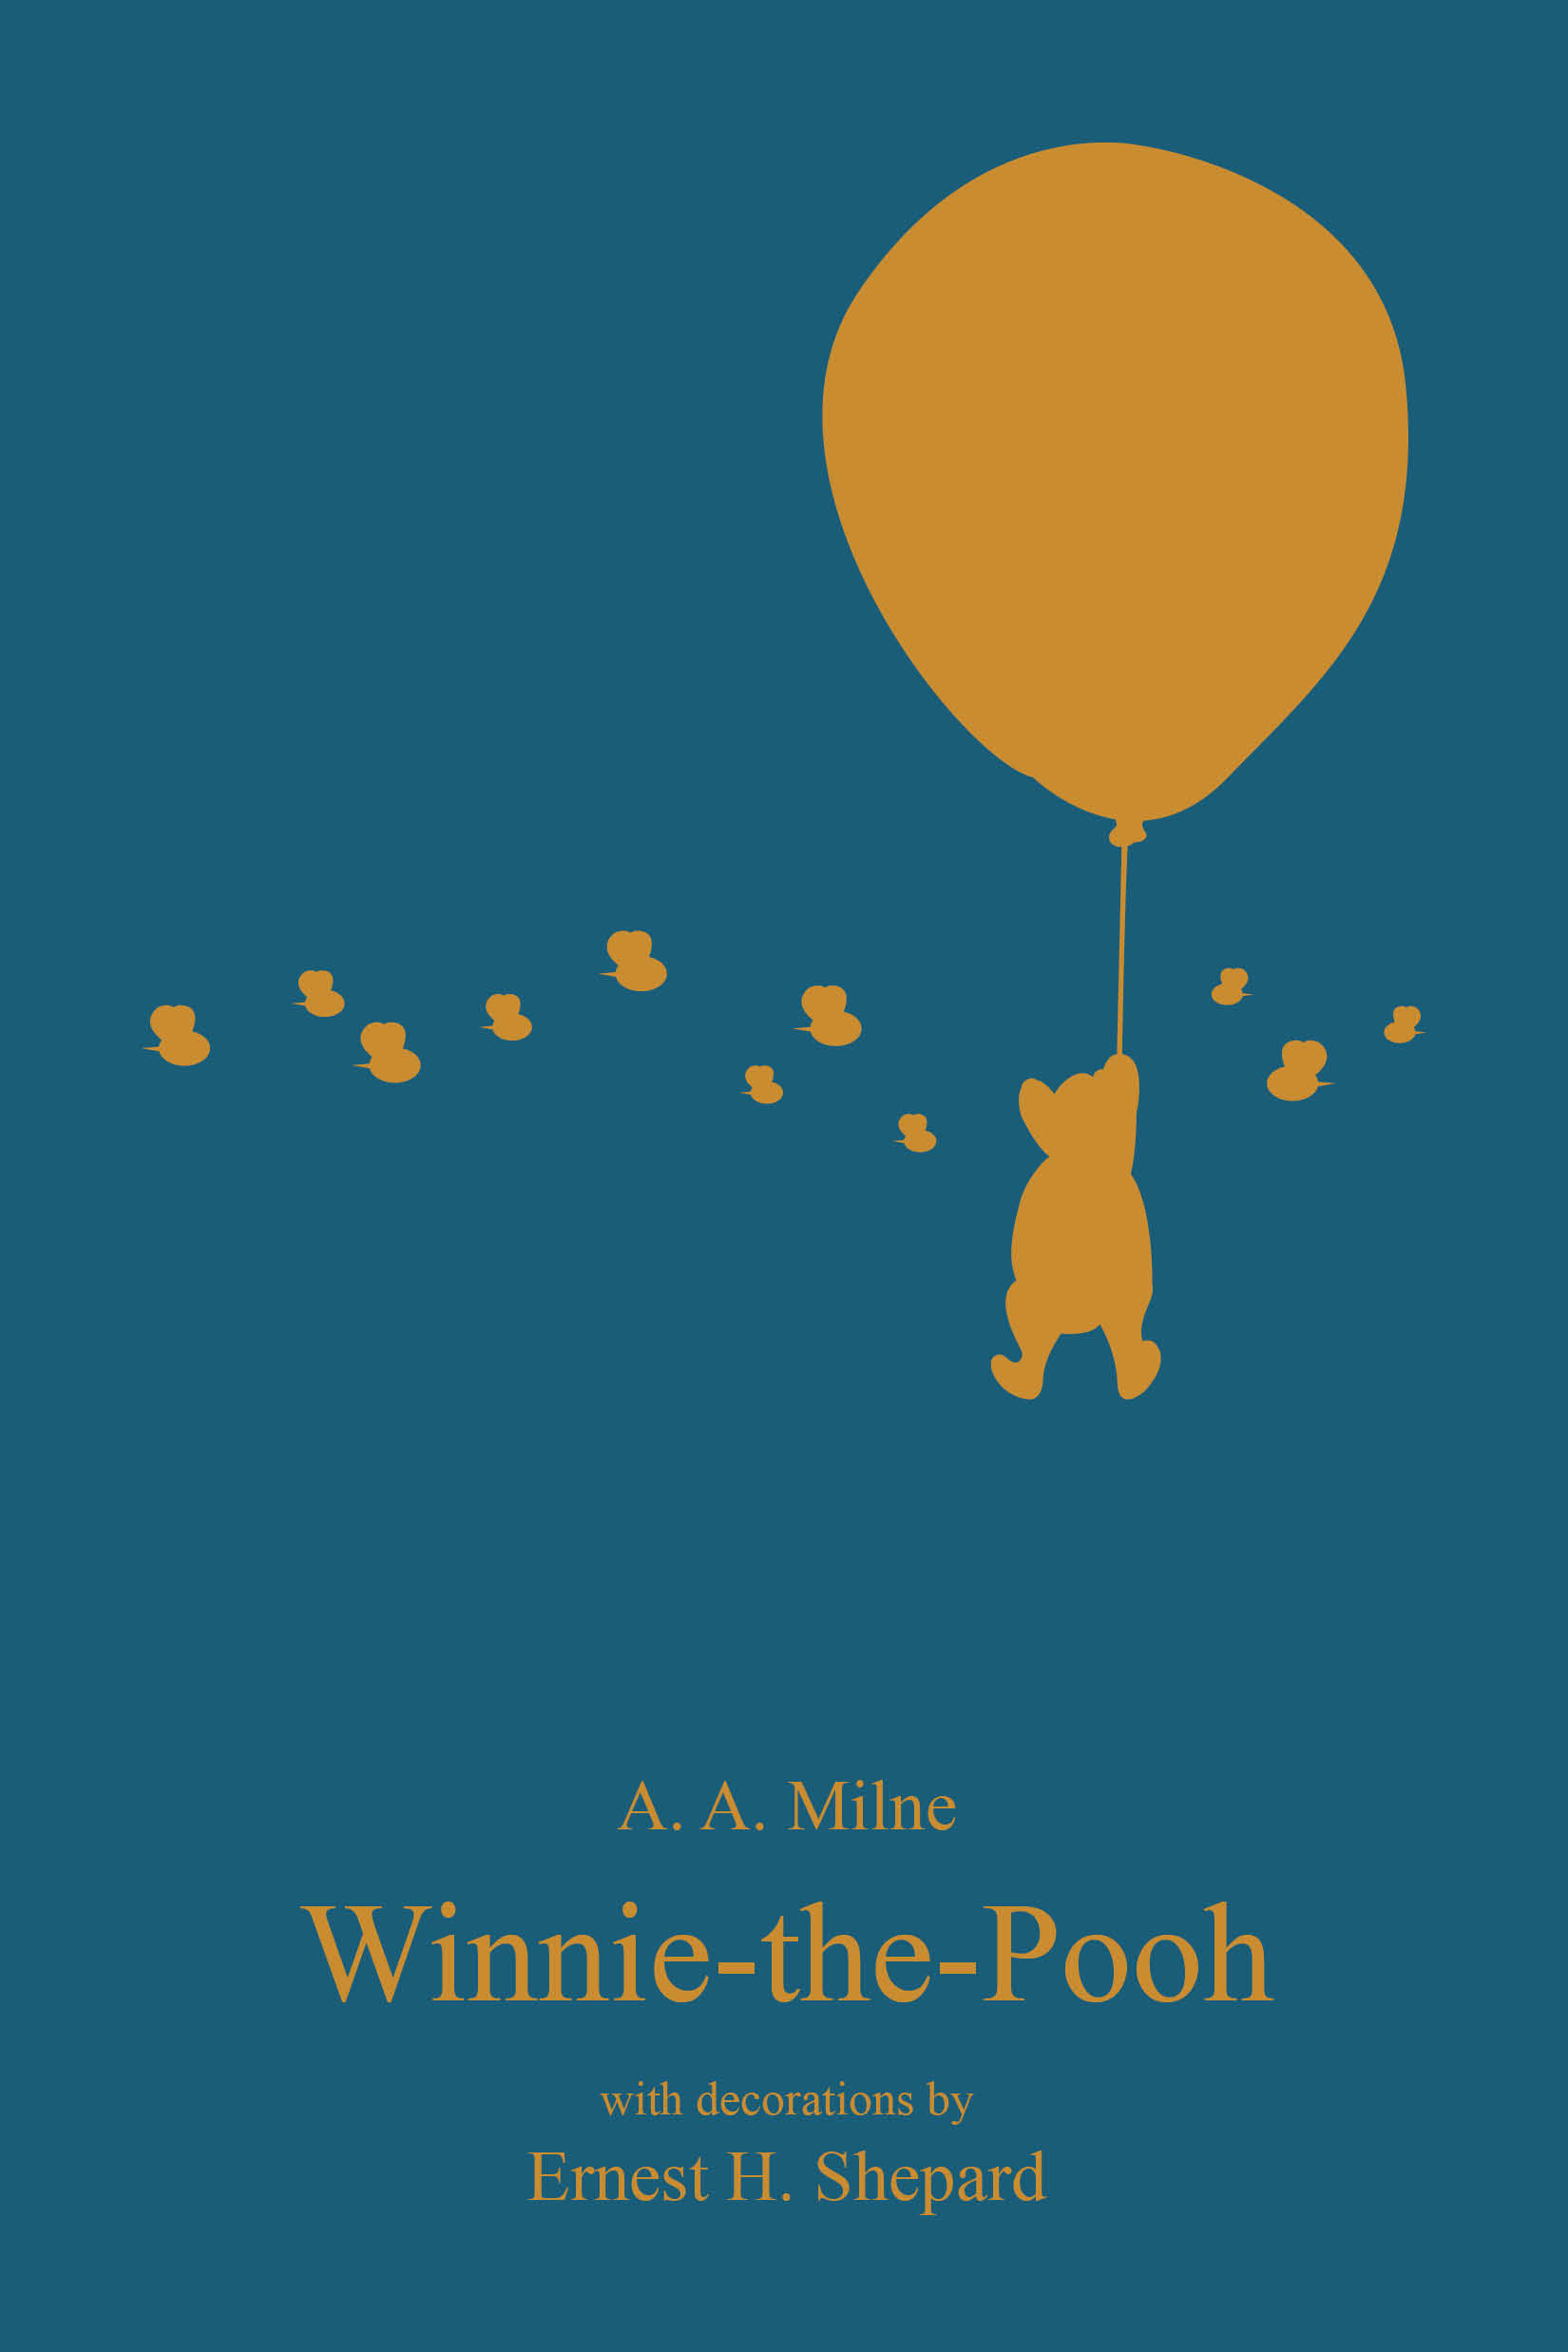 Quiz Book Cover Design : Caitlin weir design photography pooh book covers